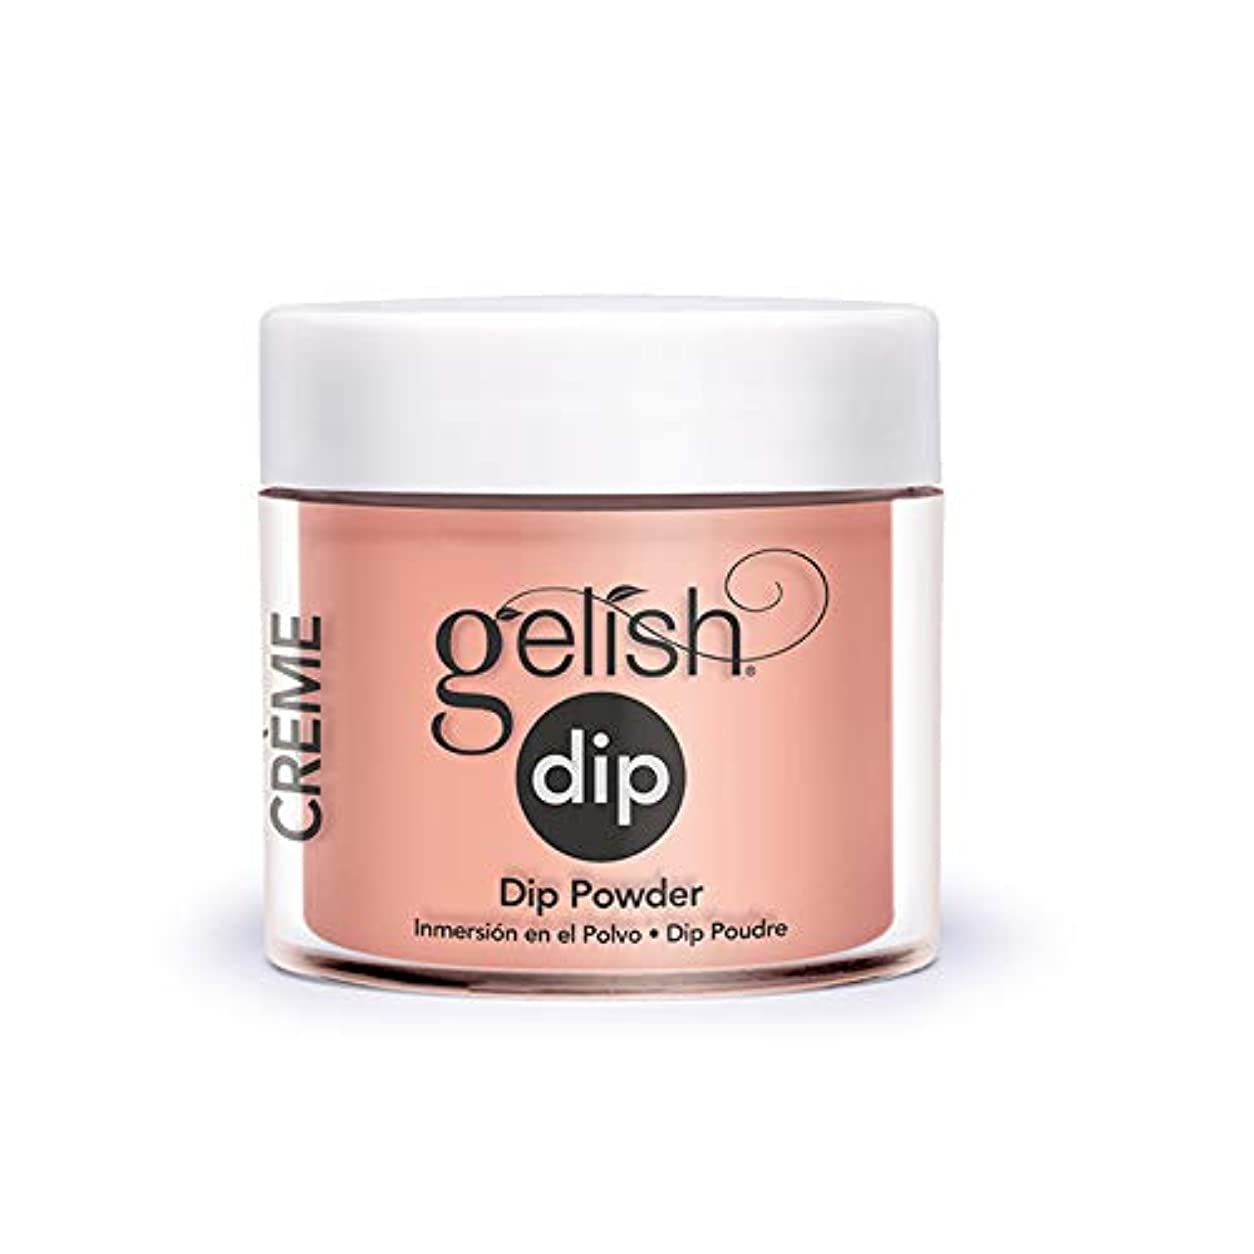 メトリック経験的傾向があるHarmony Gelish - Acrylic Dip Powder - I'm Brighter Than You - 23g / 0.8oz